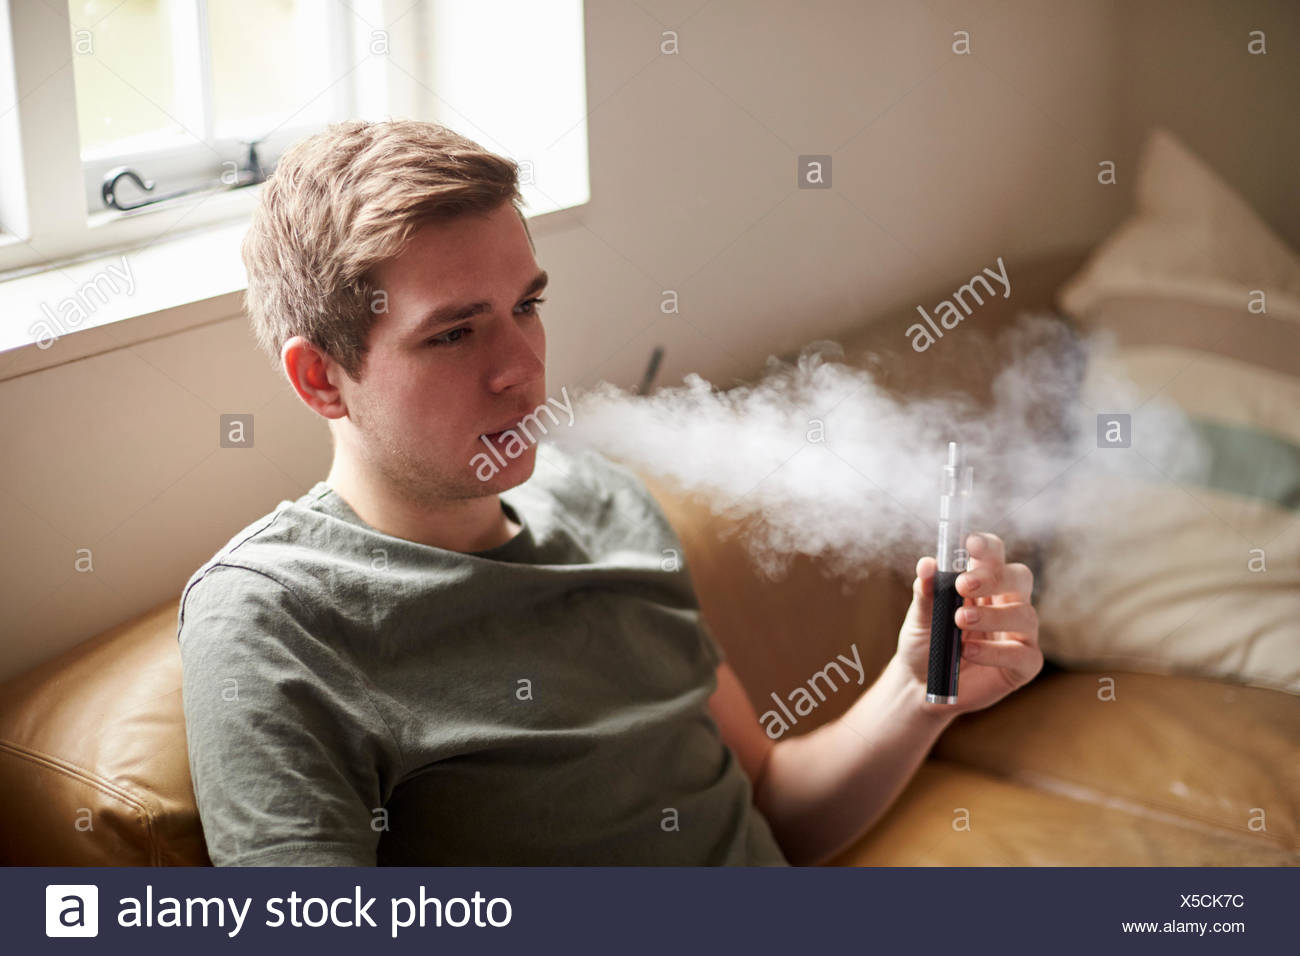 Young Man Using Vapourizer As Smoking Alternative - Stock Image